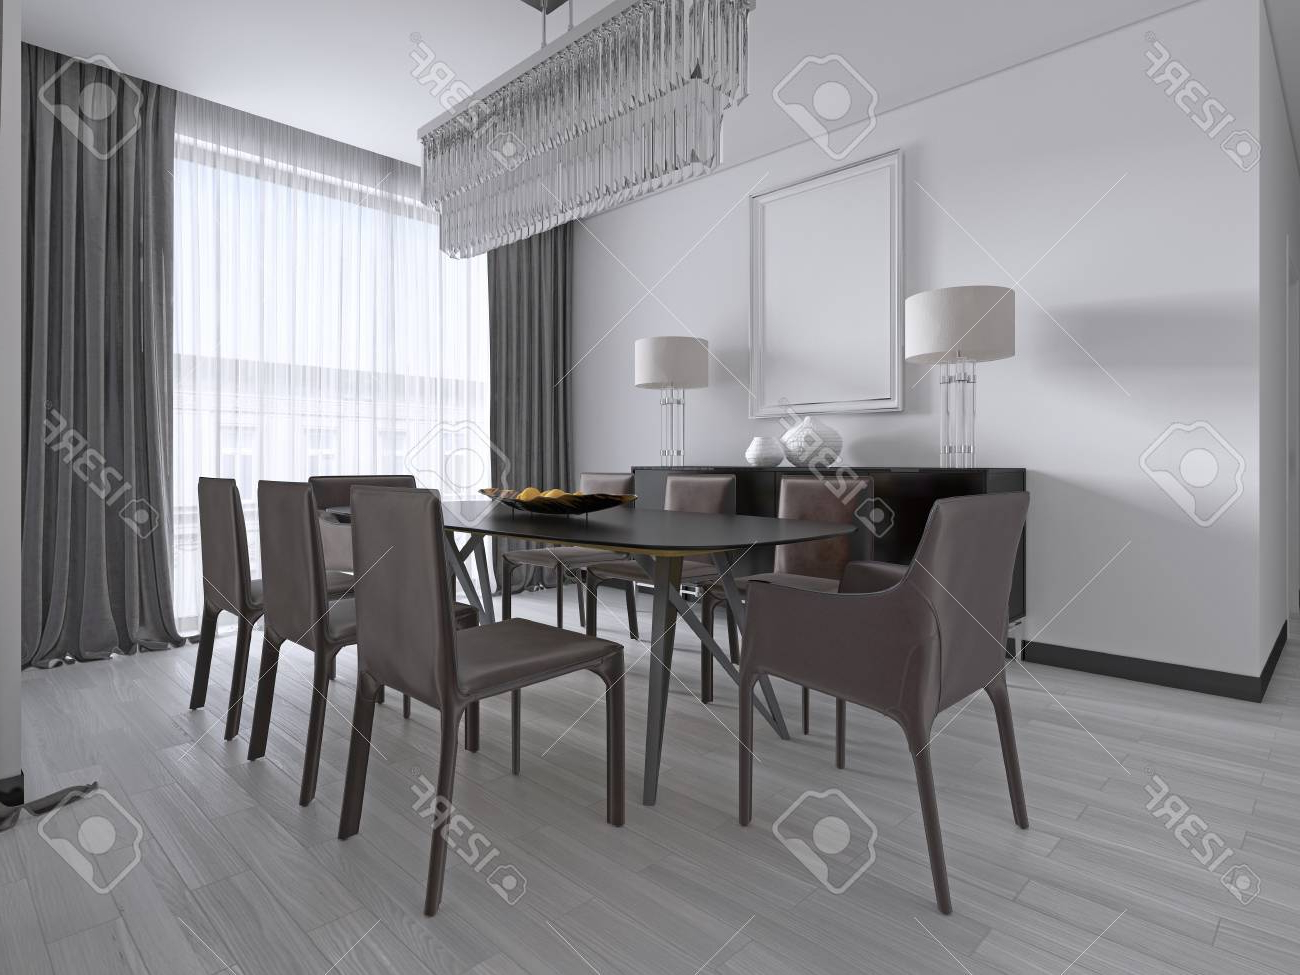 Latest Contemporary Rectangular Dining Tables Pertaining To Contemporary Dining Room With A Large Rectangular Dining Table. (View 21 of 25)